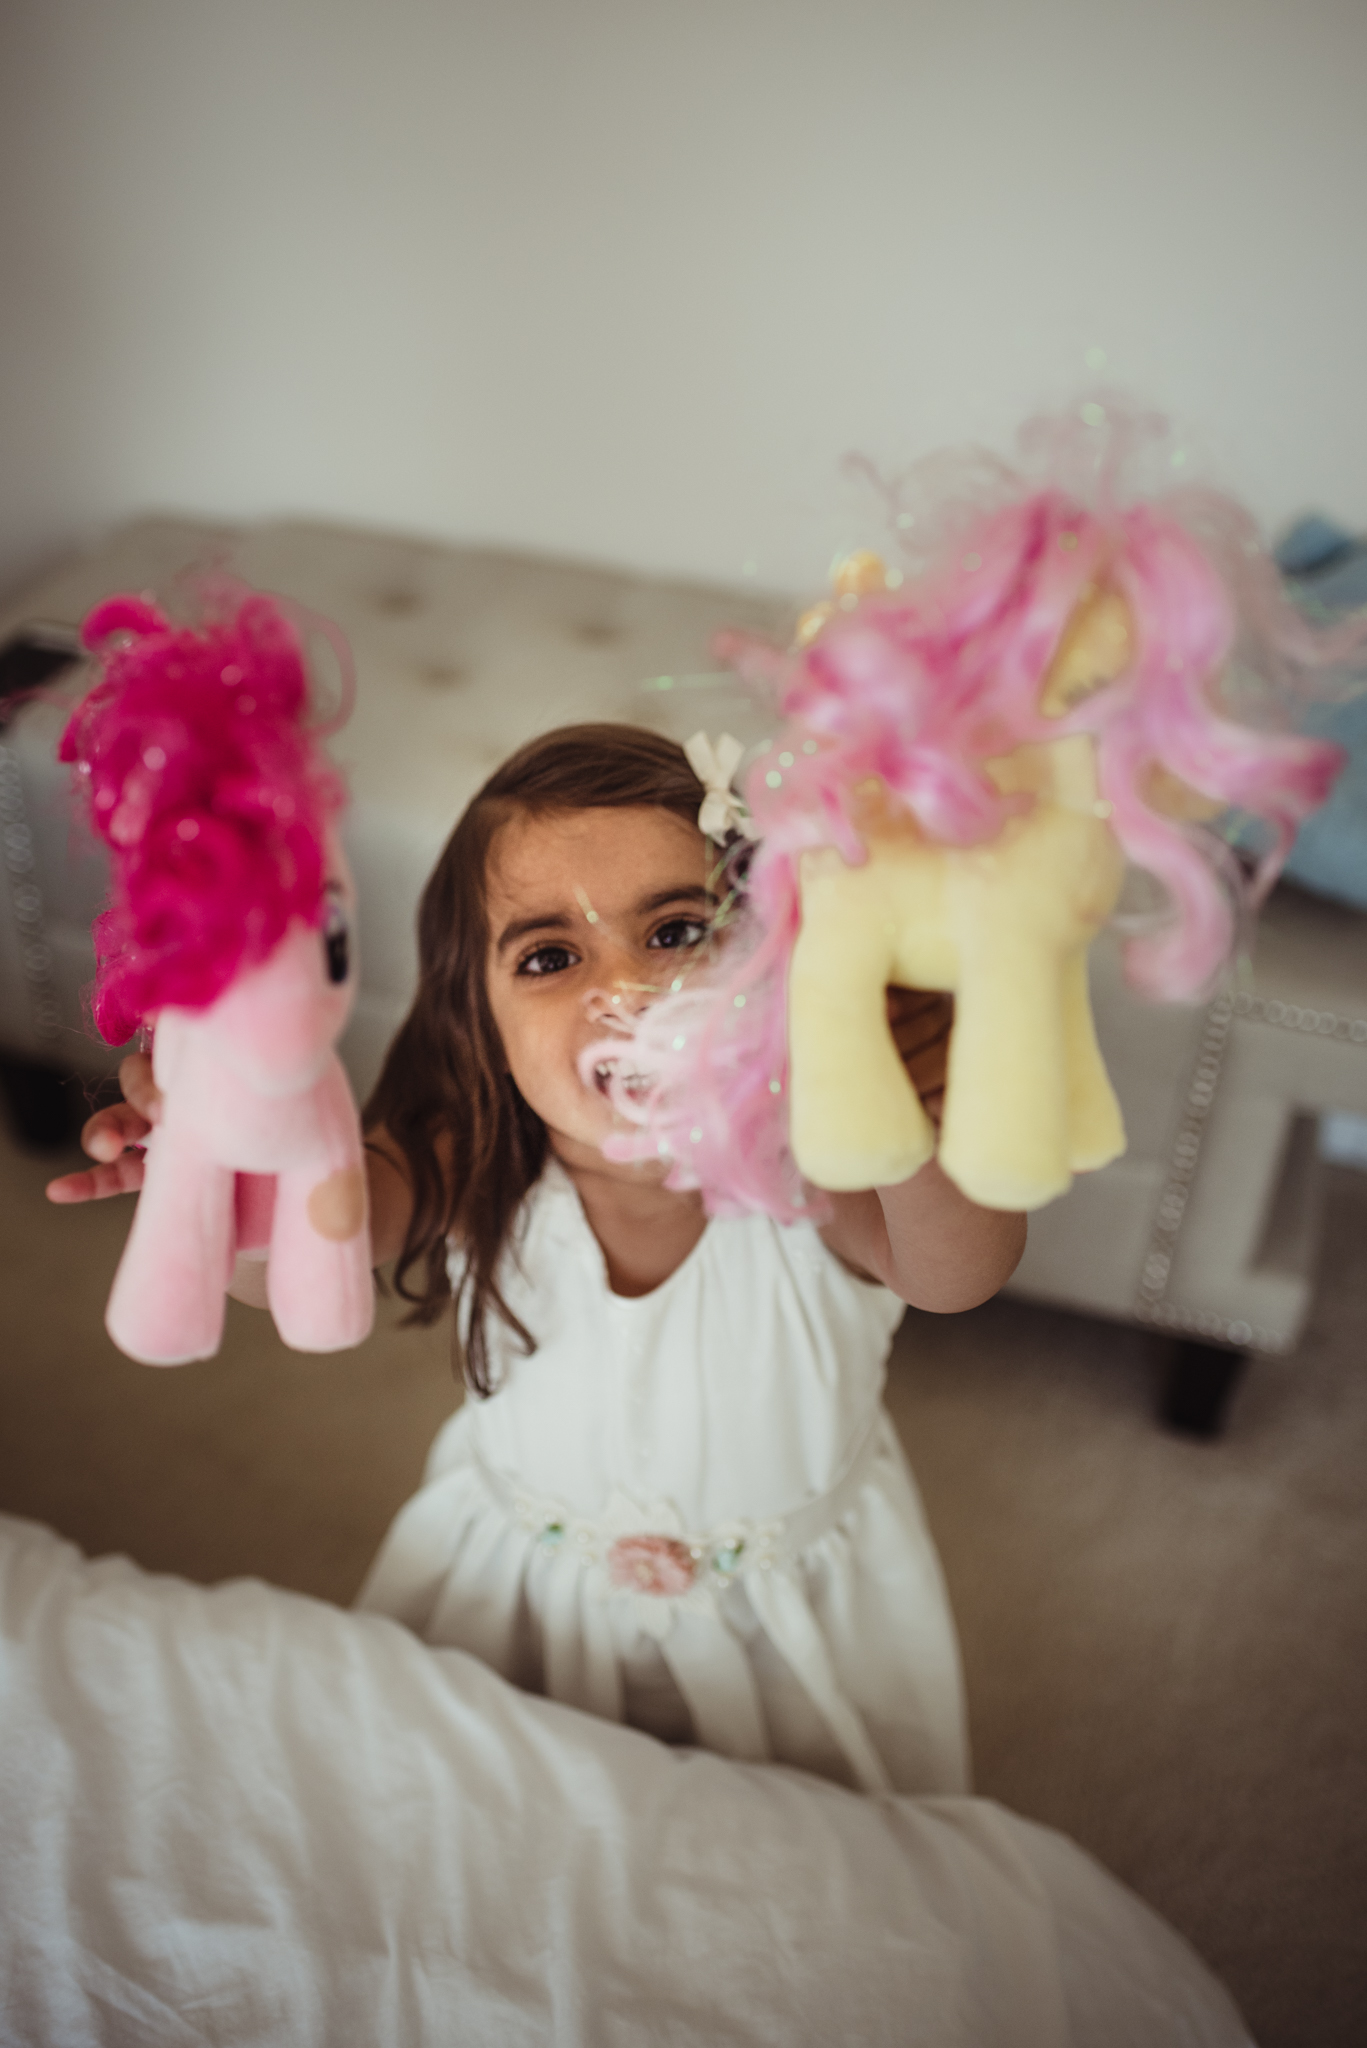 The daughter plays with her My Little Pony dolls during her photo session with Rose Trail Images in Raleigh, North Carolina.